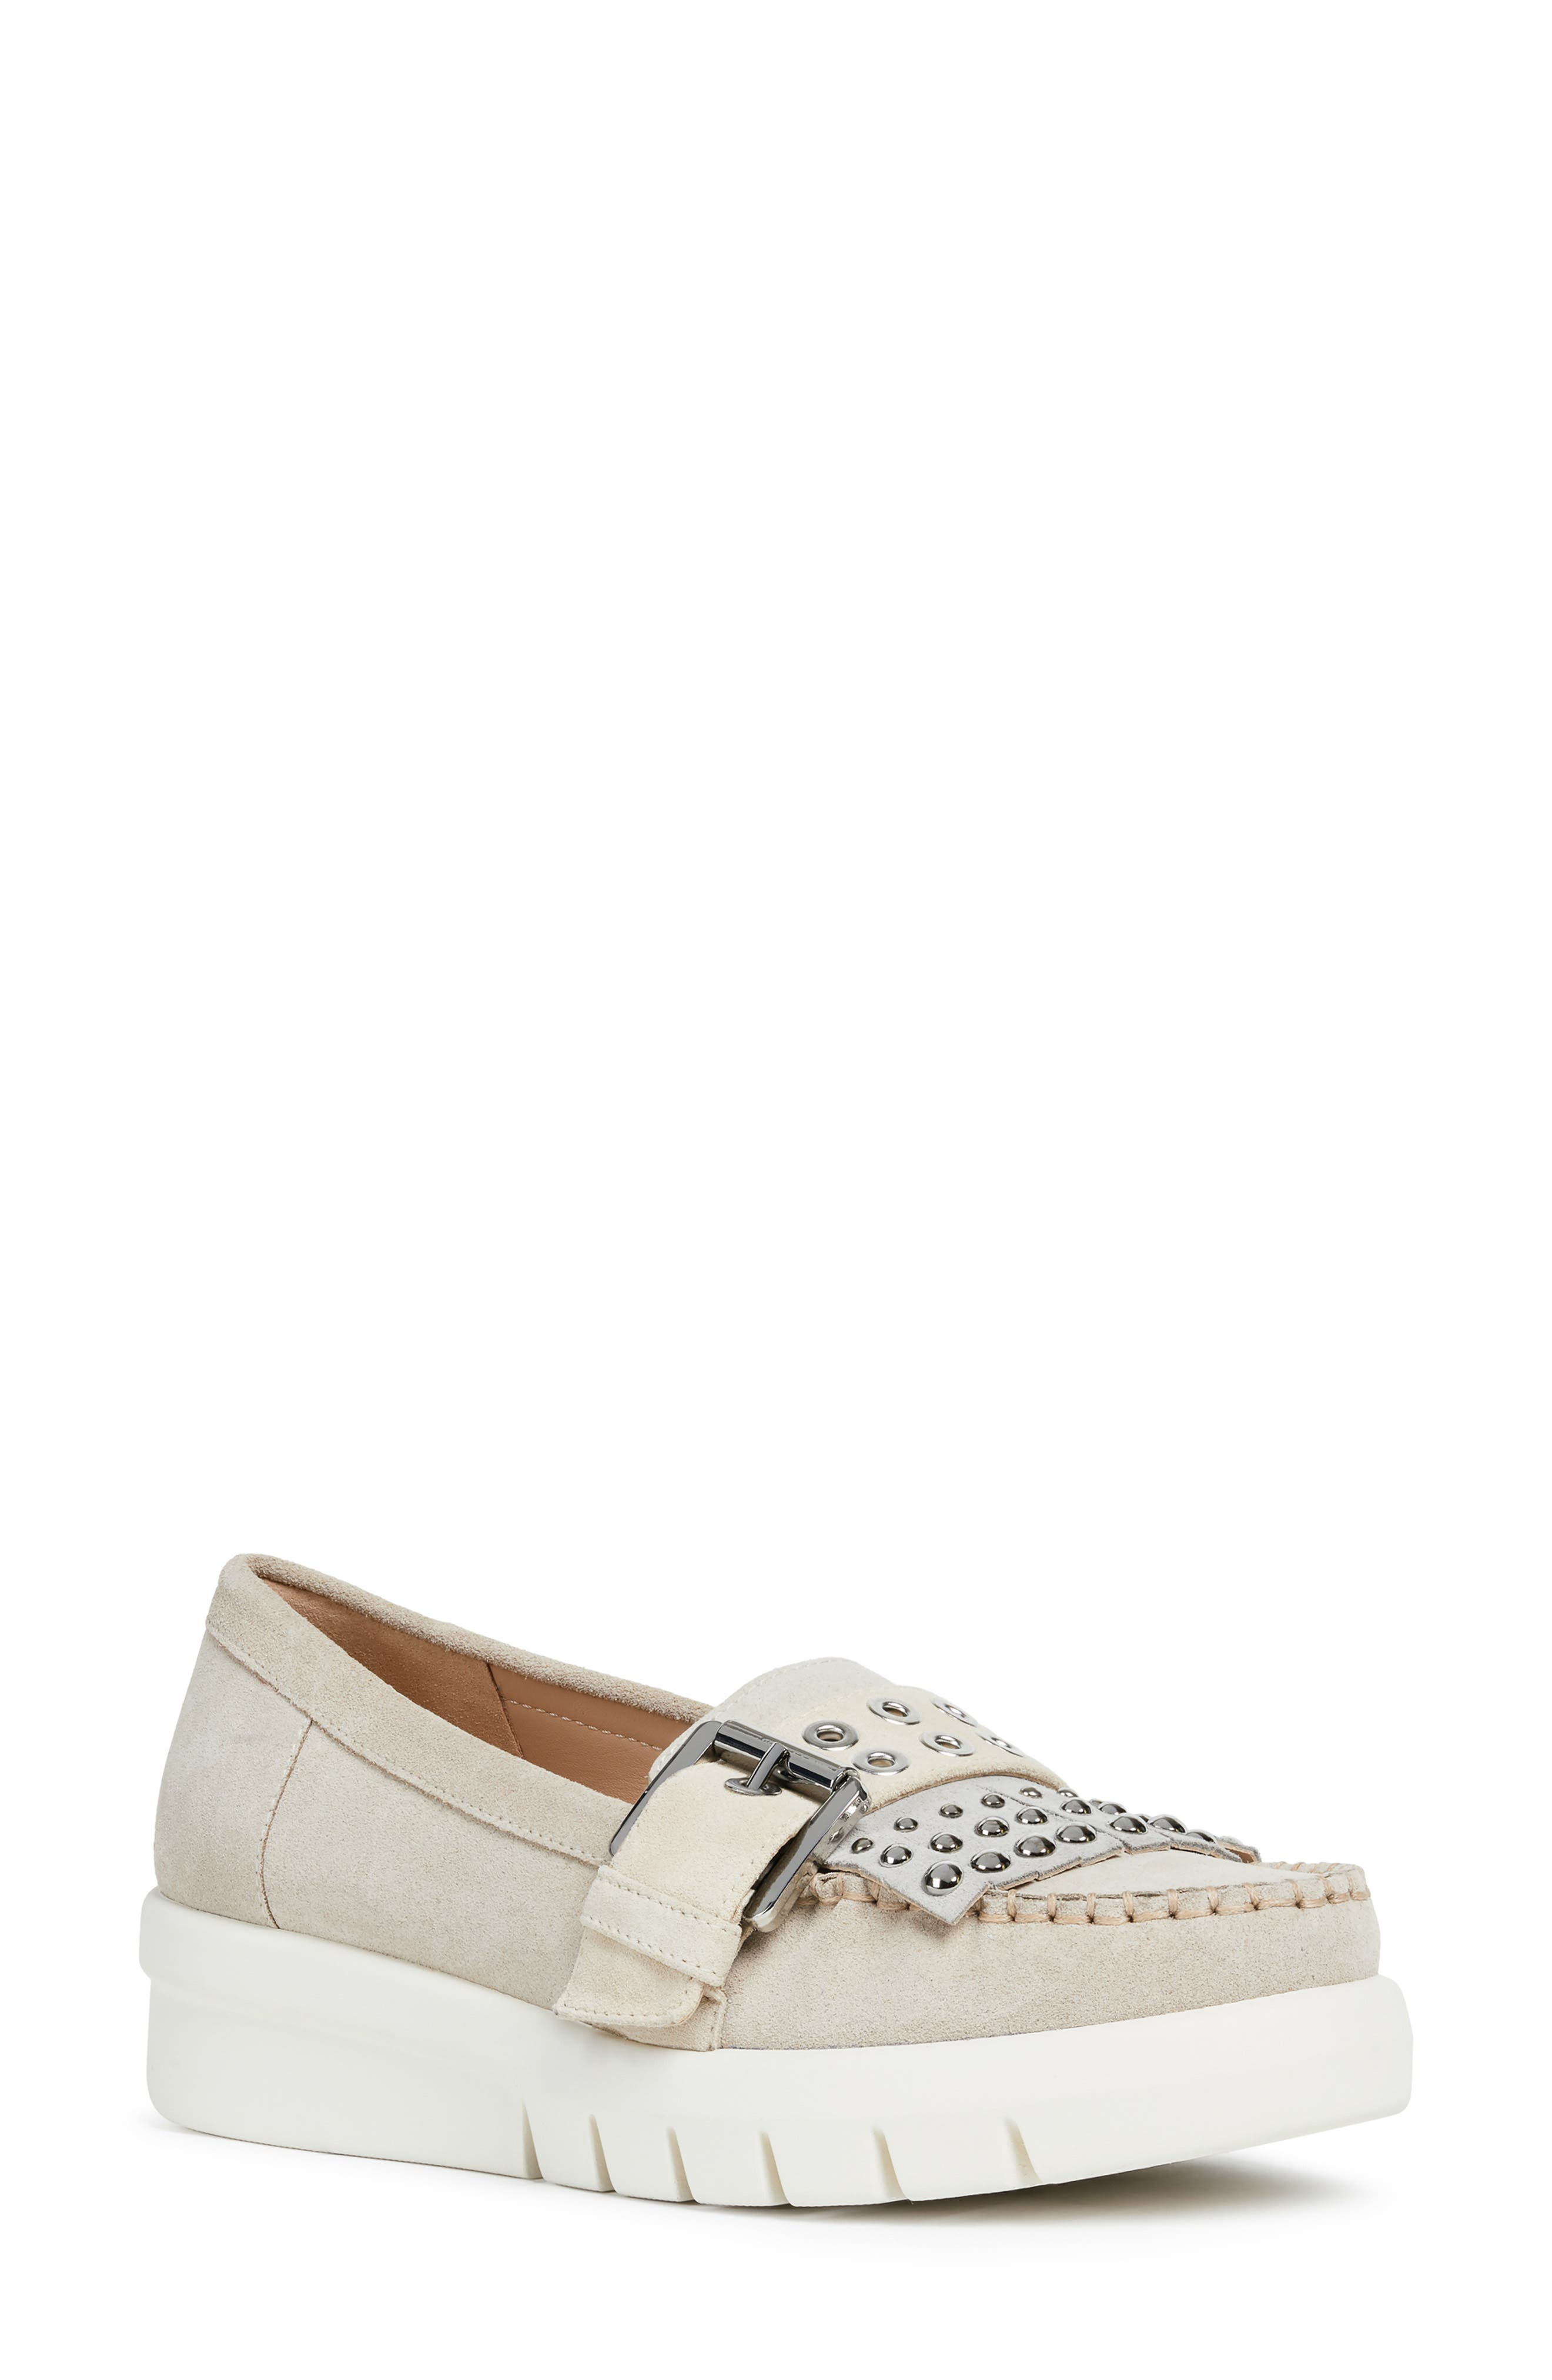 GEOX, Wimbley Studded Kiltie Loafer, Main thumbnail 1, color, LIGHT TAUPE/ GREY SUEDE